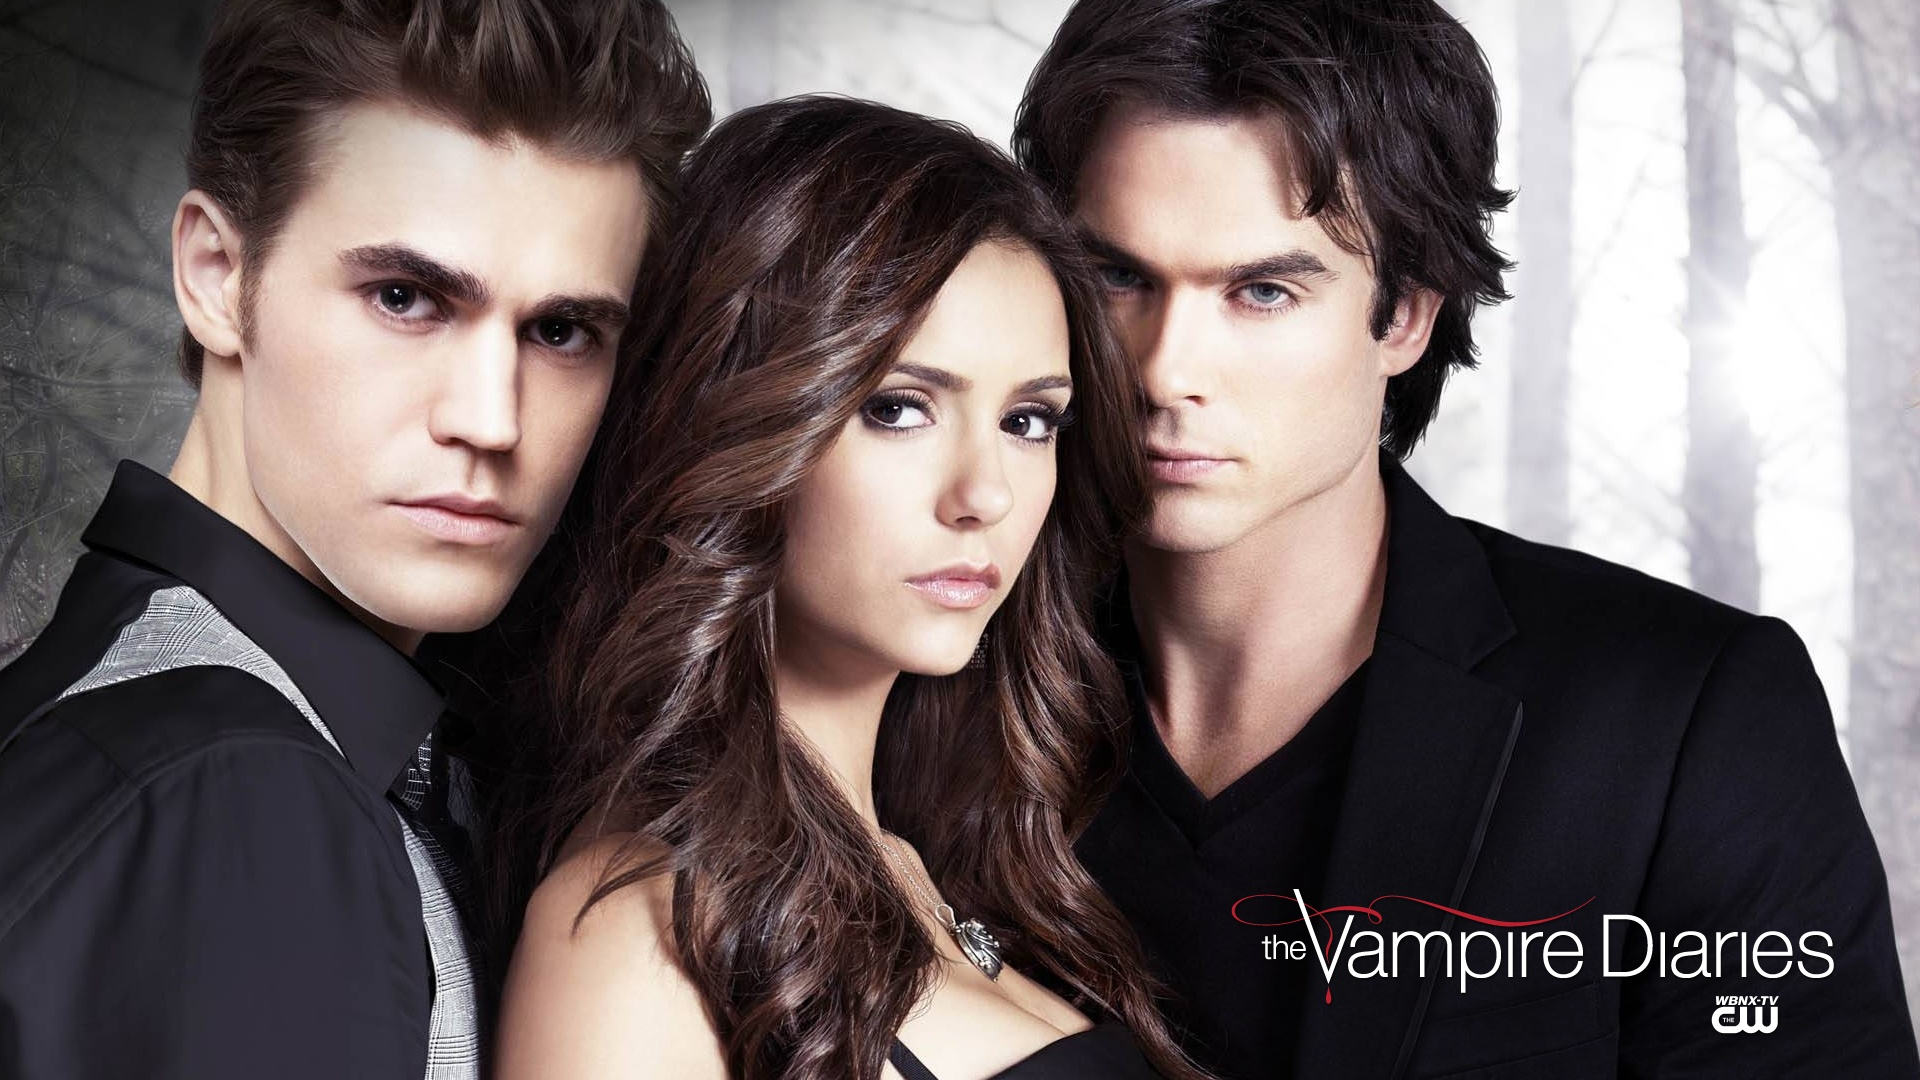 Download · Sports Wallpaper Vampire Diaries Bite Kb Jpeg · Download ...